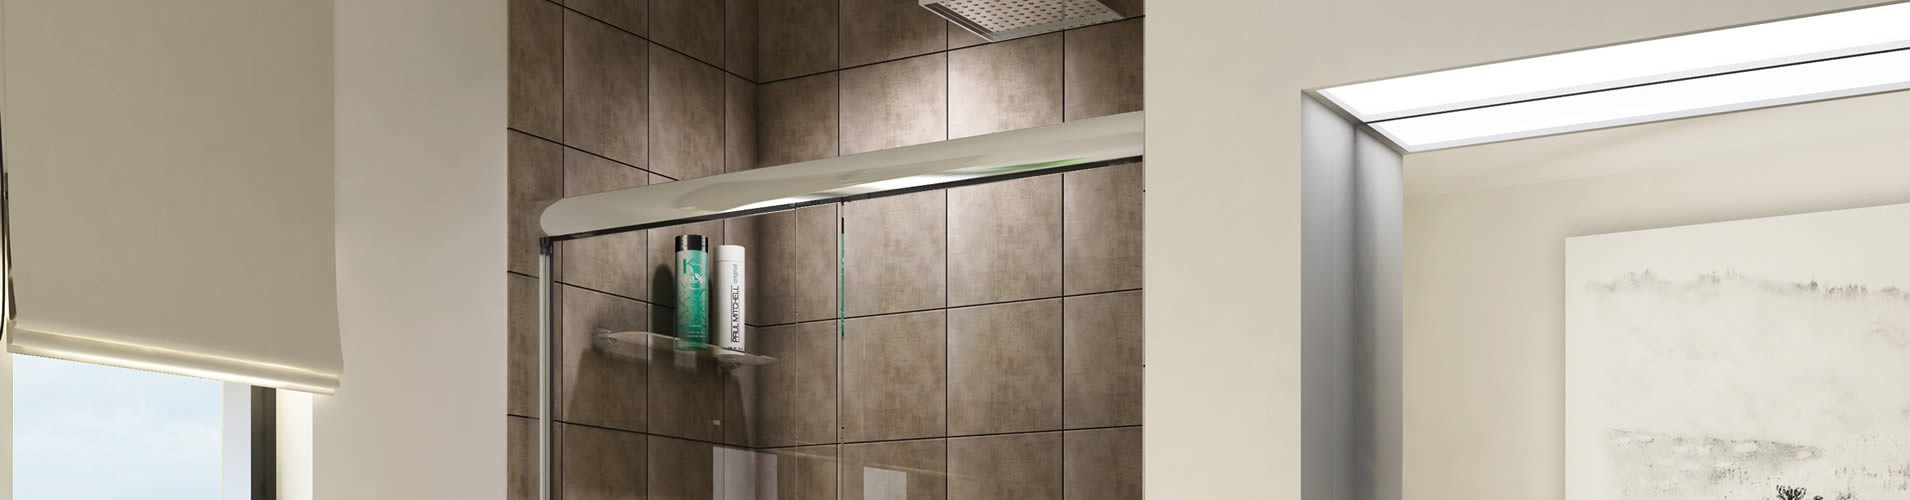 Framed Glass Shower Doors superior shower doors of atlanta - custom shower glass installs